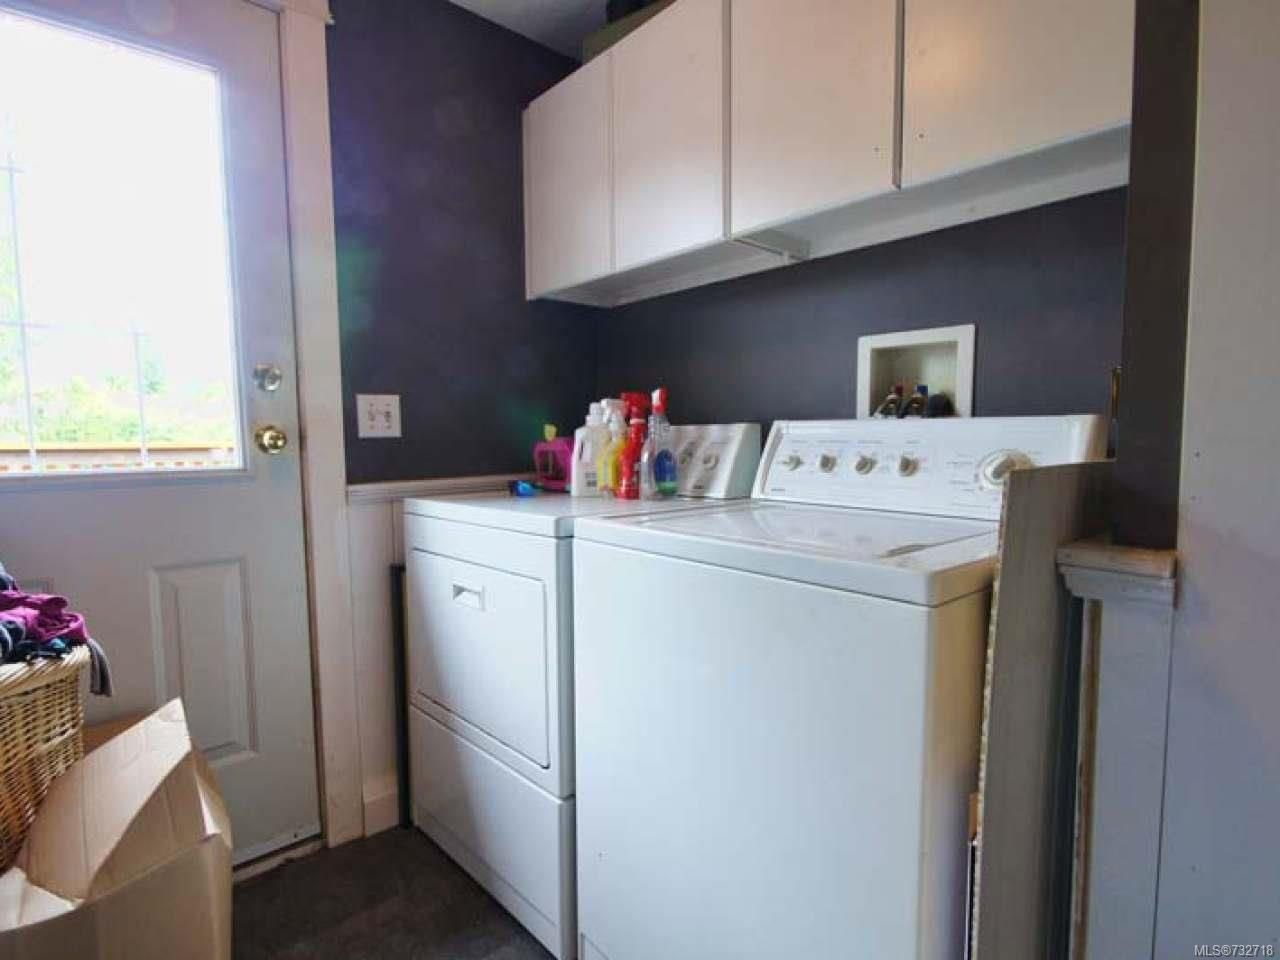 Photo 14: Photos: 921 POPLAR Way in ERRINGTON: PQ Errington/Coombs/Hilliers Manufactured Home for sale (Parksville/Qualicum)  : MLS®# 732718